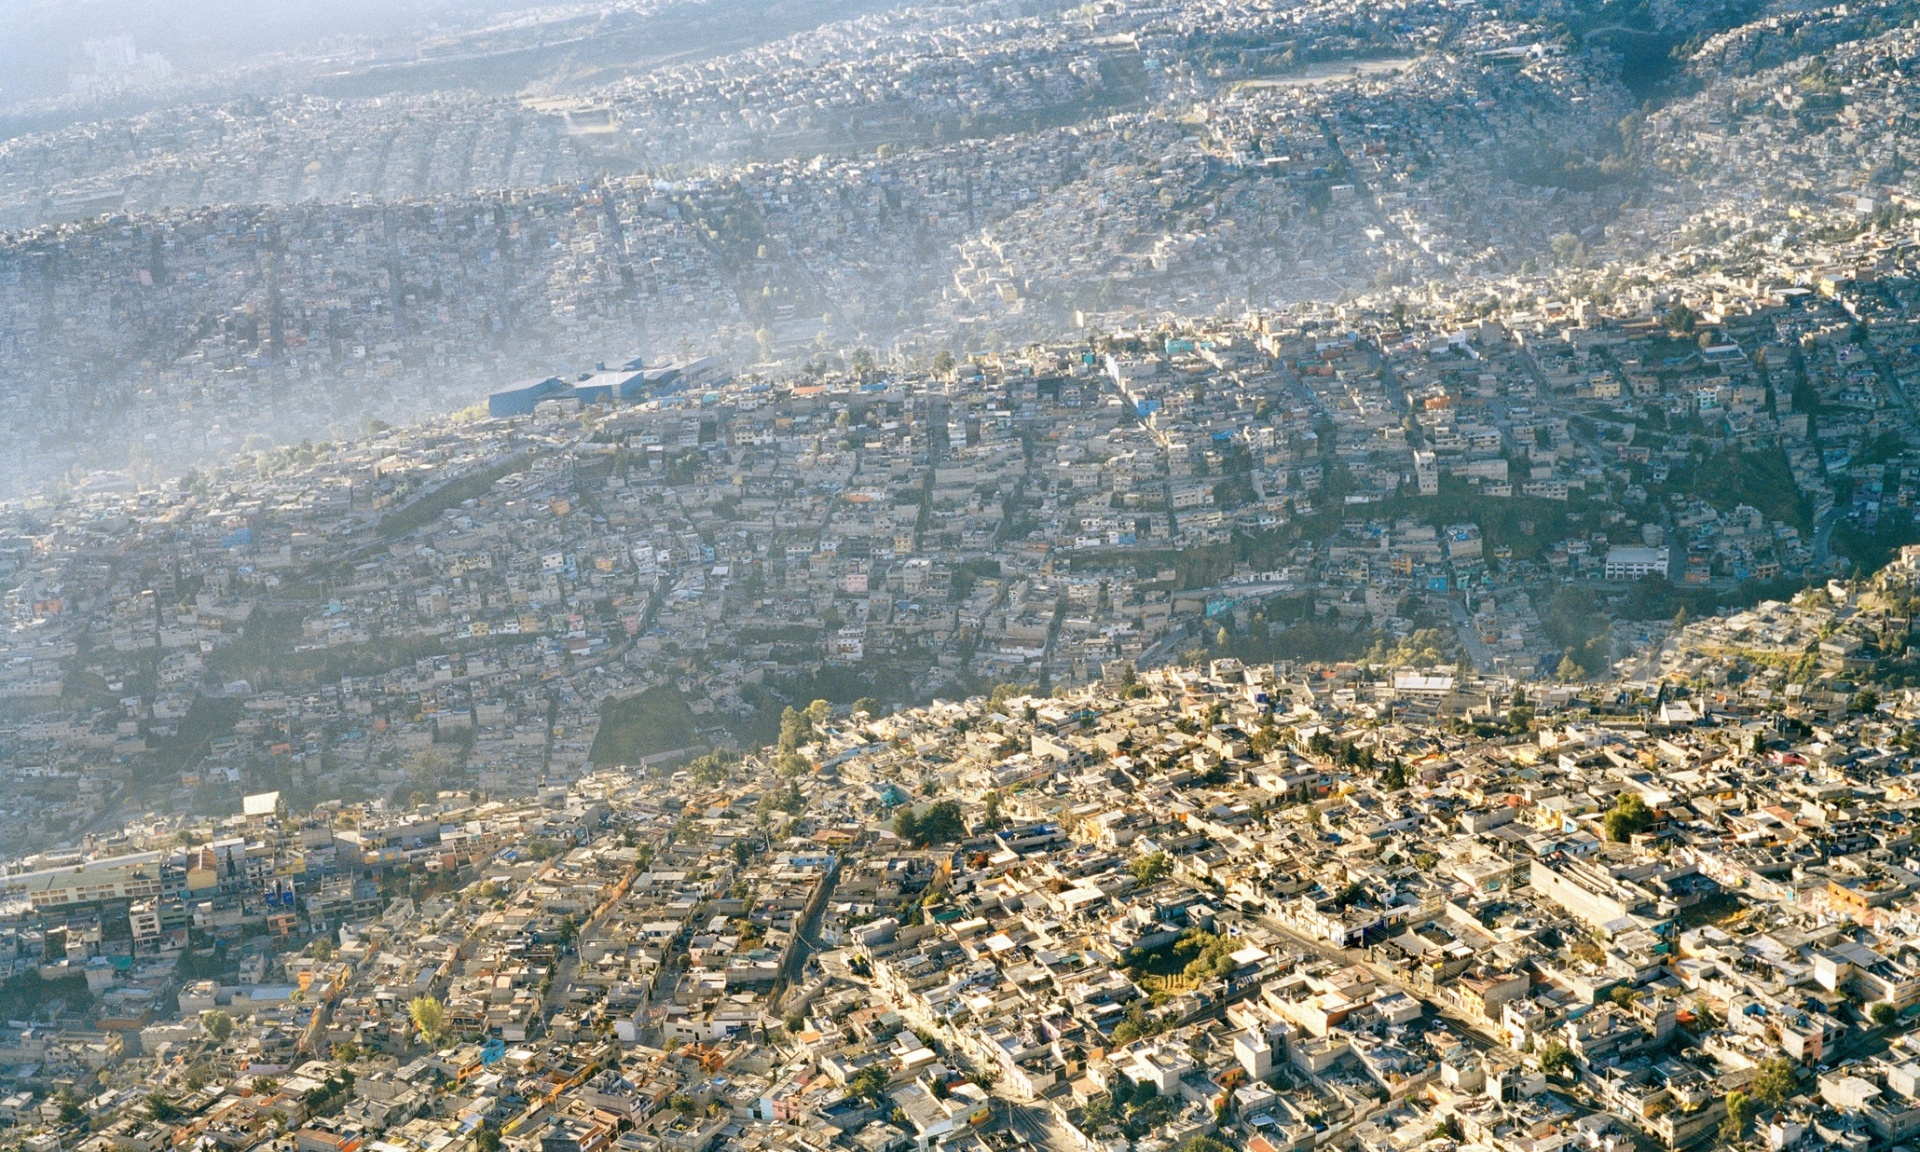 Suburbs of Mexico City